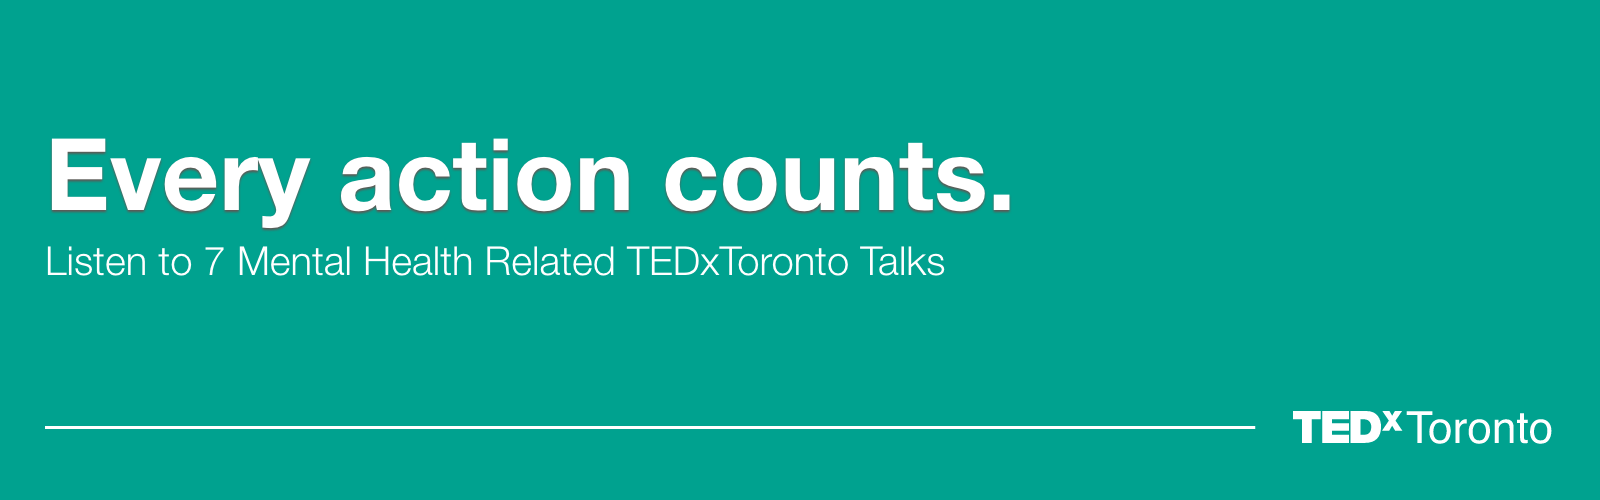 Seven Mental Health-Related TEDxToronto Talks in Honour of Bell Let's Talk Day